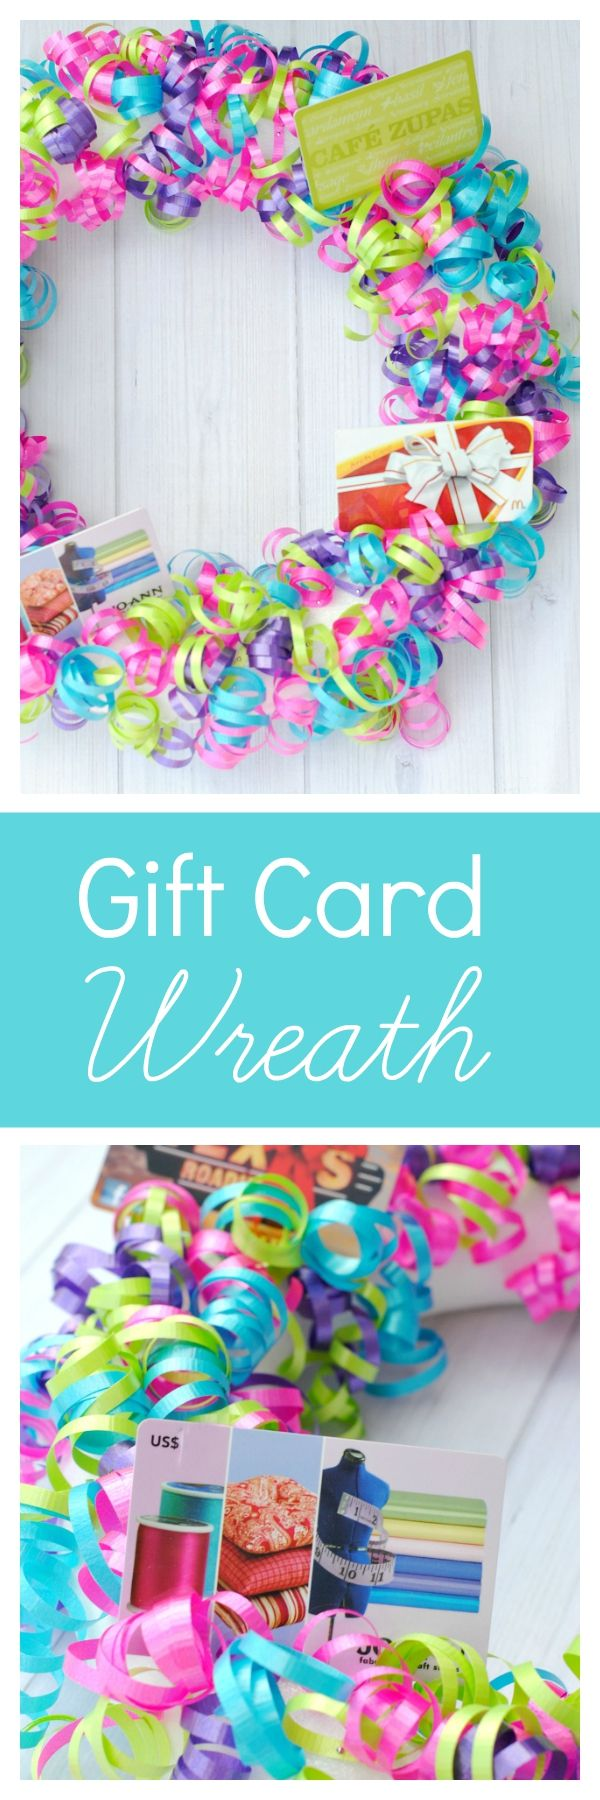 Birthday Gifts Creative Gift Card Ideas This Gift Card Wreath Is A